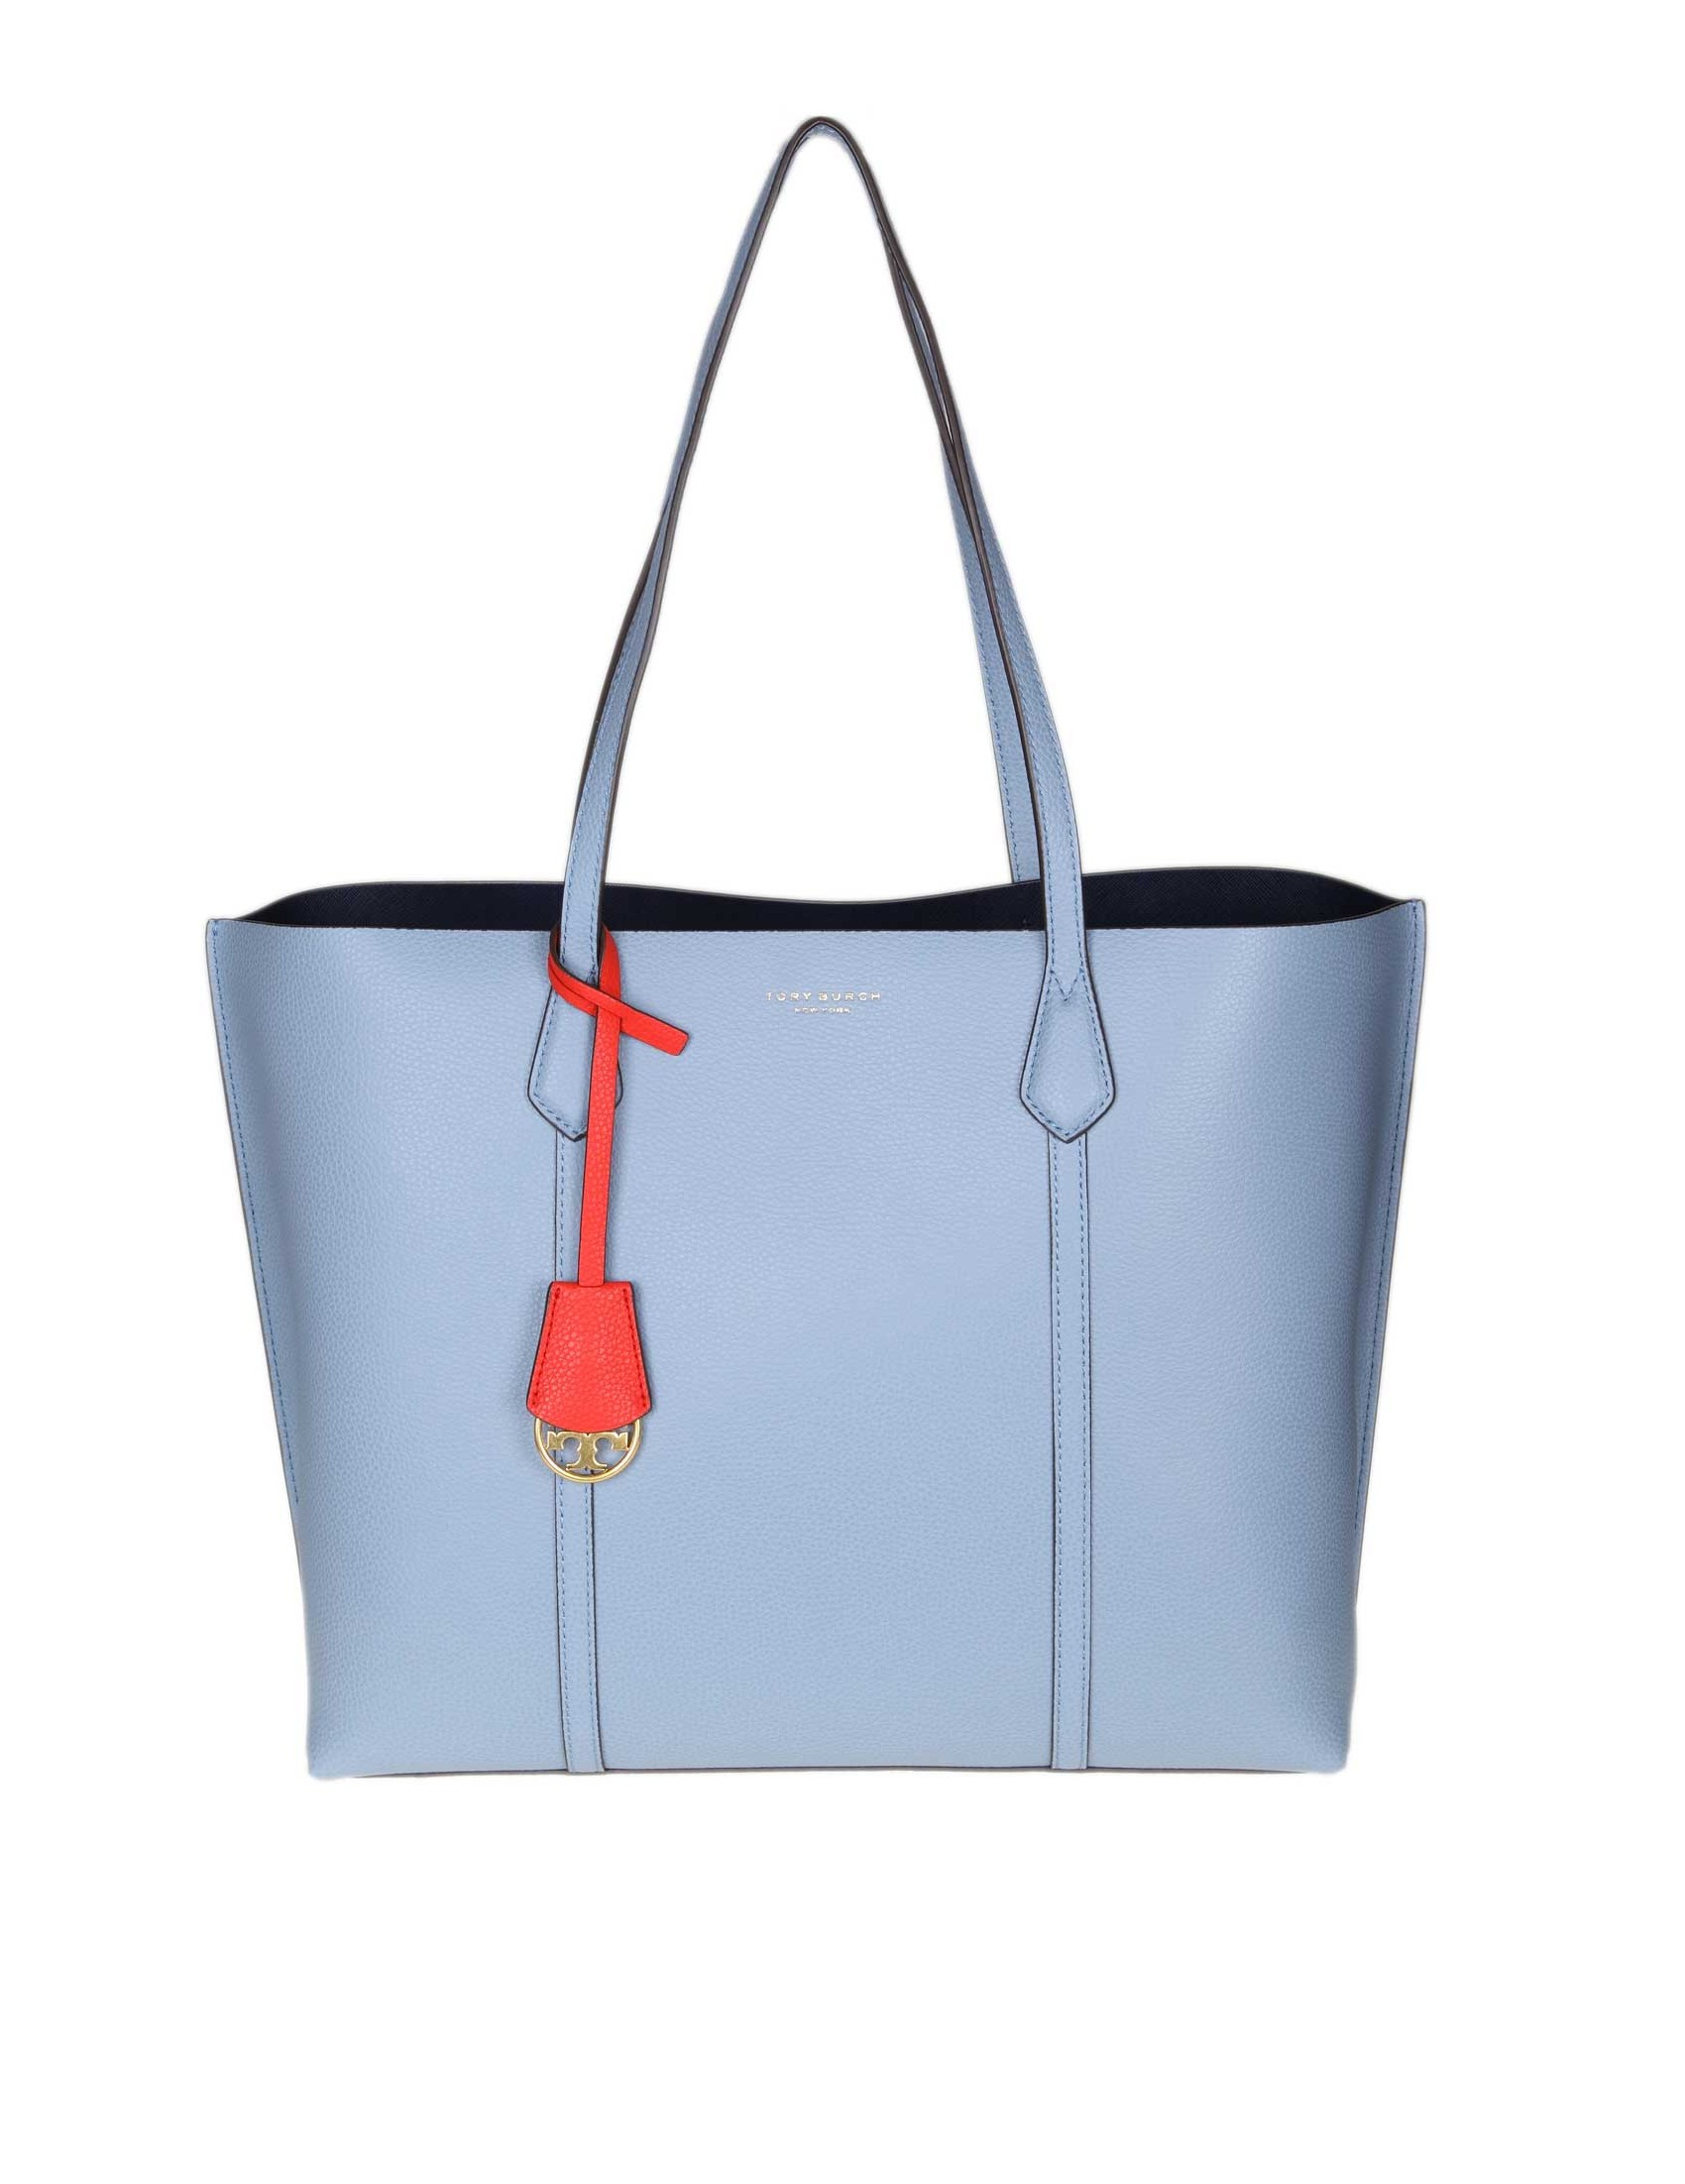 31c3fa85f090 Light blue colour 24 cm leather handles. Removable charm. Leather interior  1 internal central pocket with zip. Dimensions  Length 34 cm. Height 28 cm